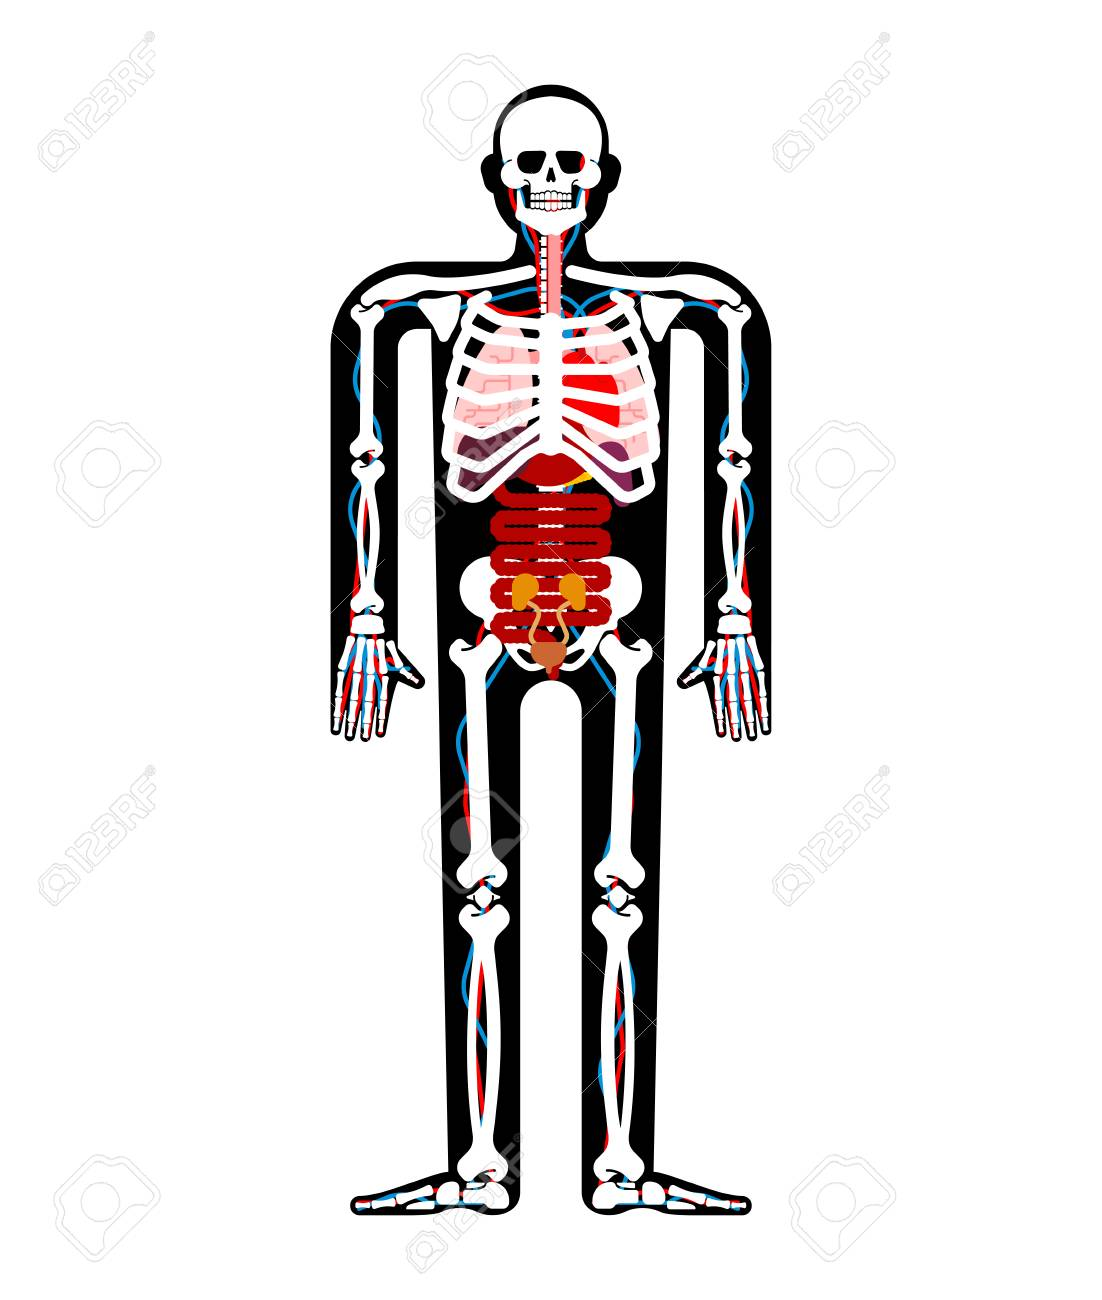 Human Anatomy Skeleton And Internal Organs Systems Of Man Body